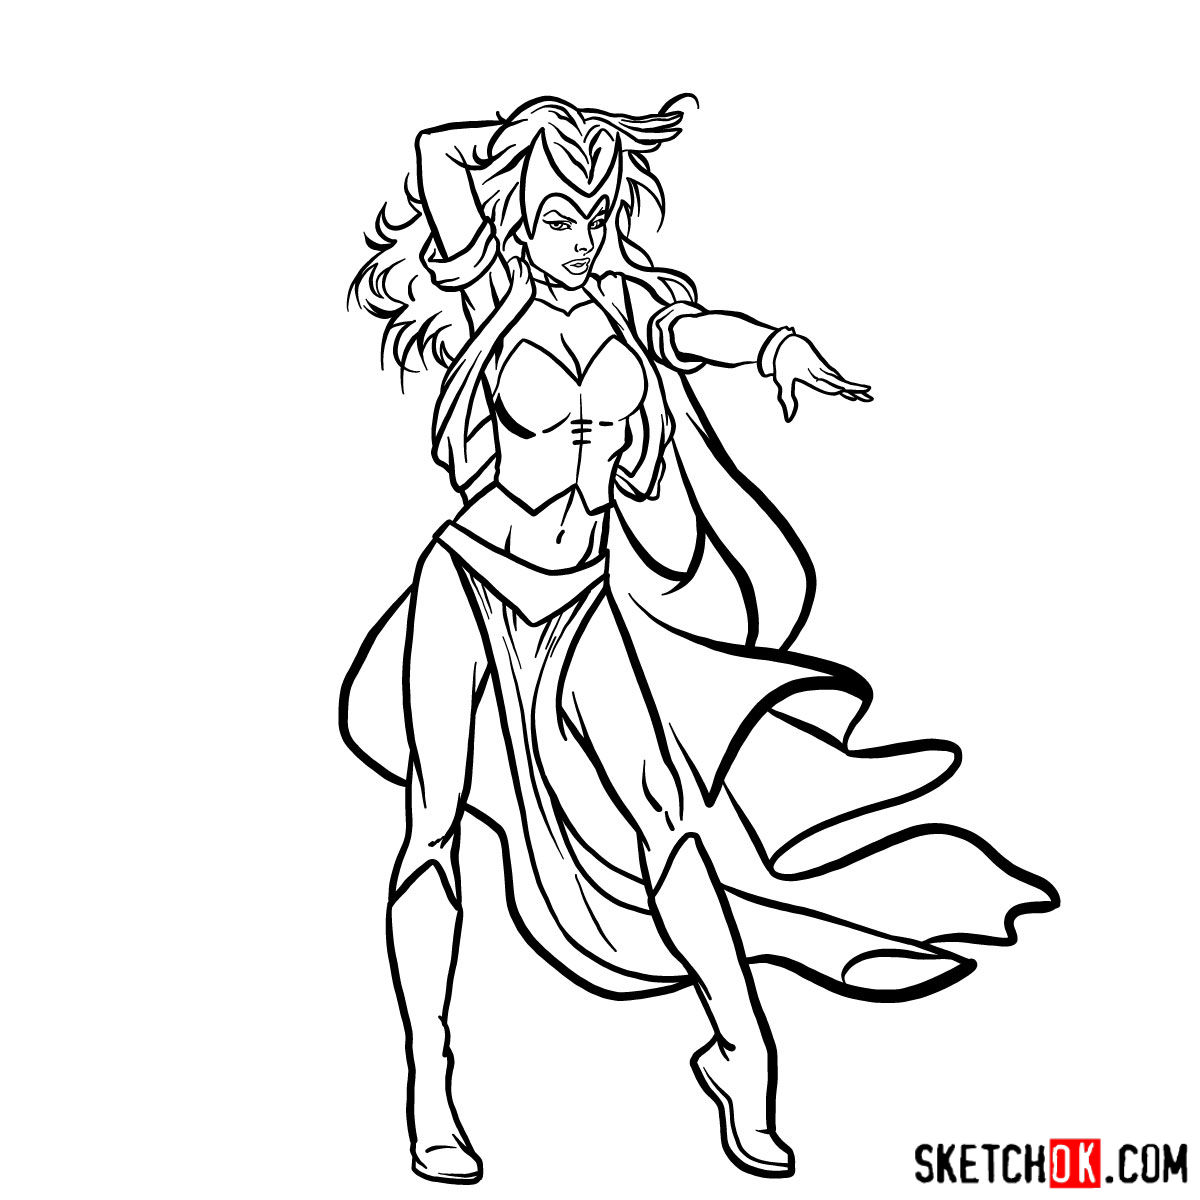 How to draw Scarlet Witch from Marvel Comics - step 15